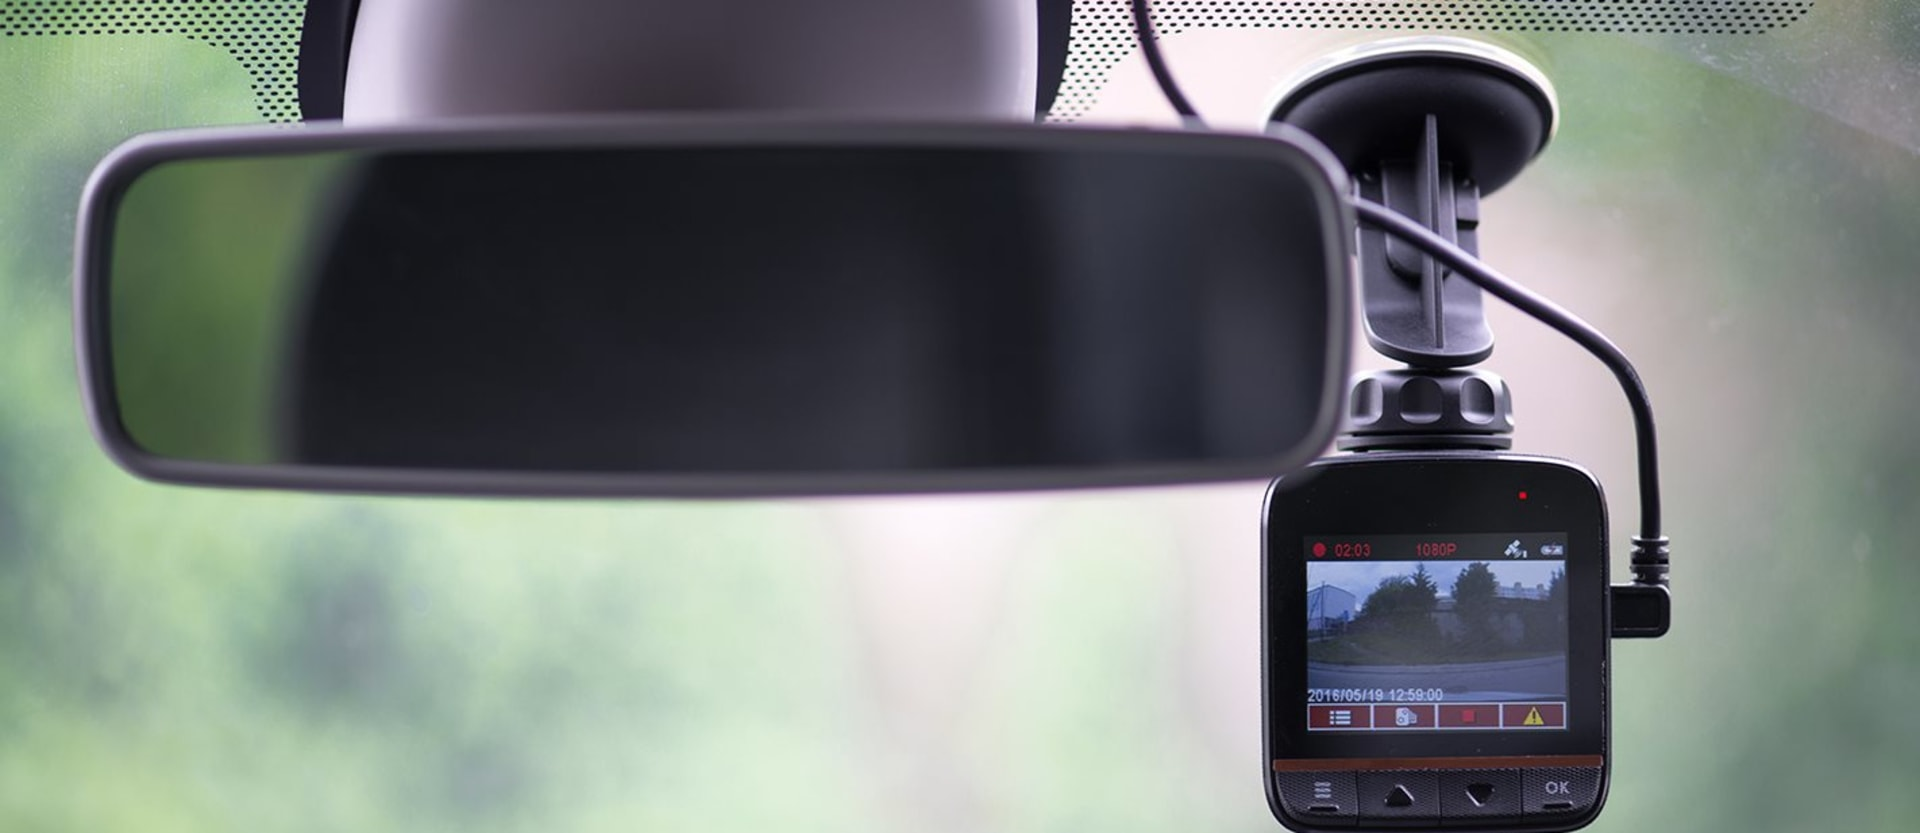 What are dash cams and why do we need them?